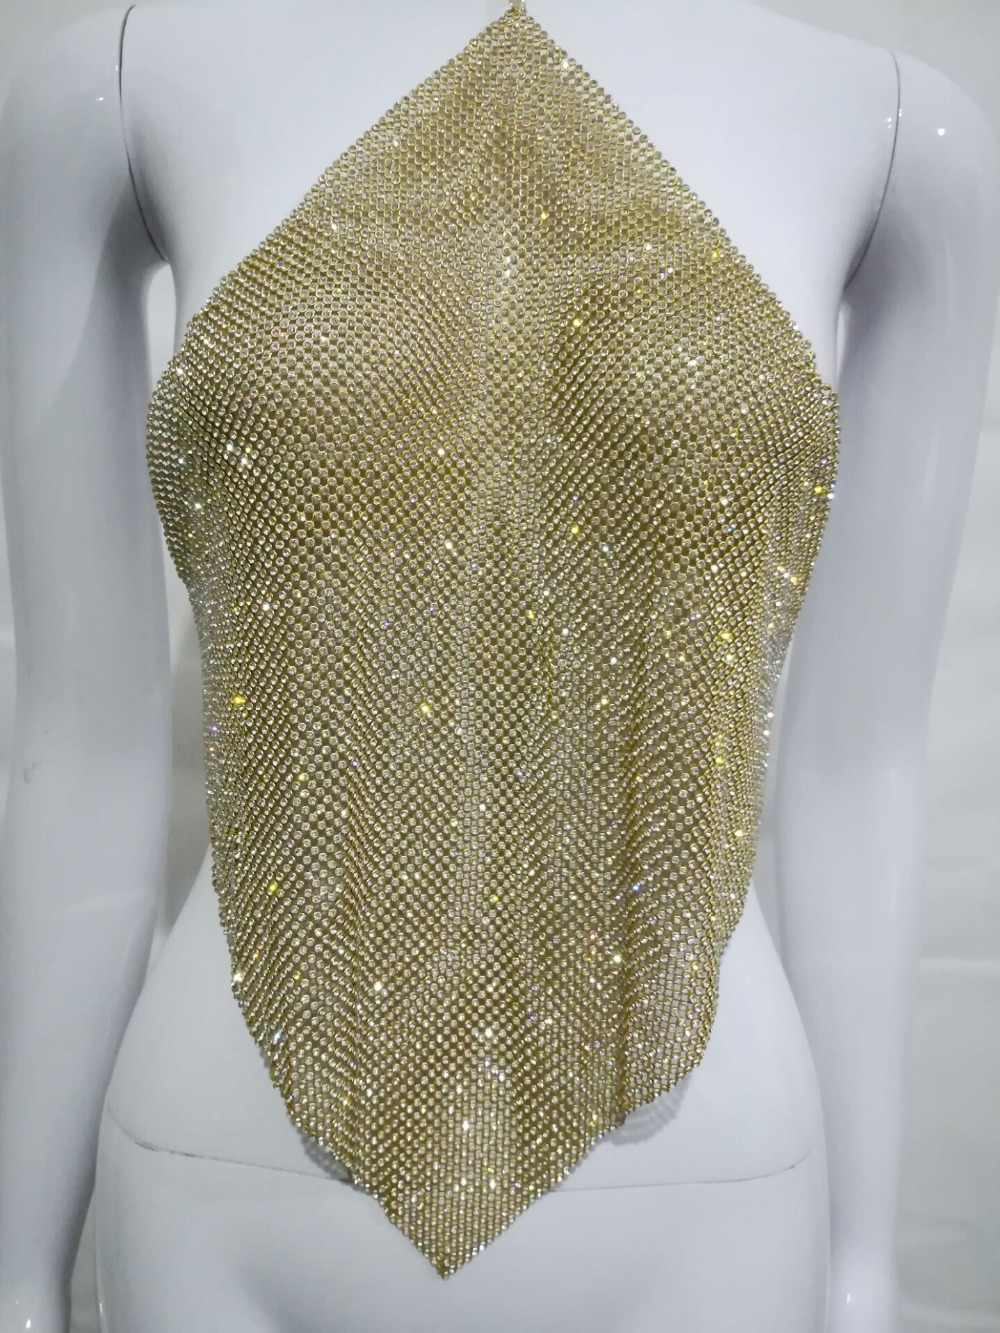 798682ca ... Crystal Mesh Top Womens Diamond Metal Crop Top 2018 Sexy Gold Silver  black Sequin Draped Chain ...